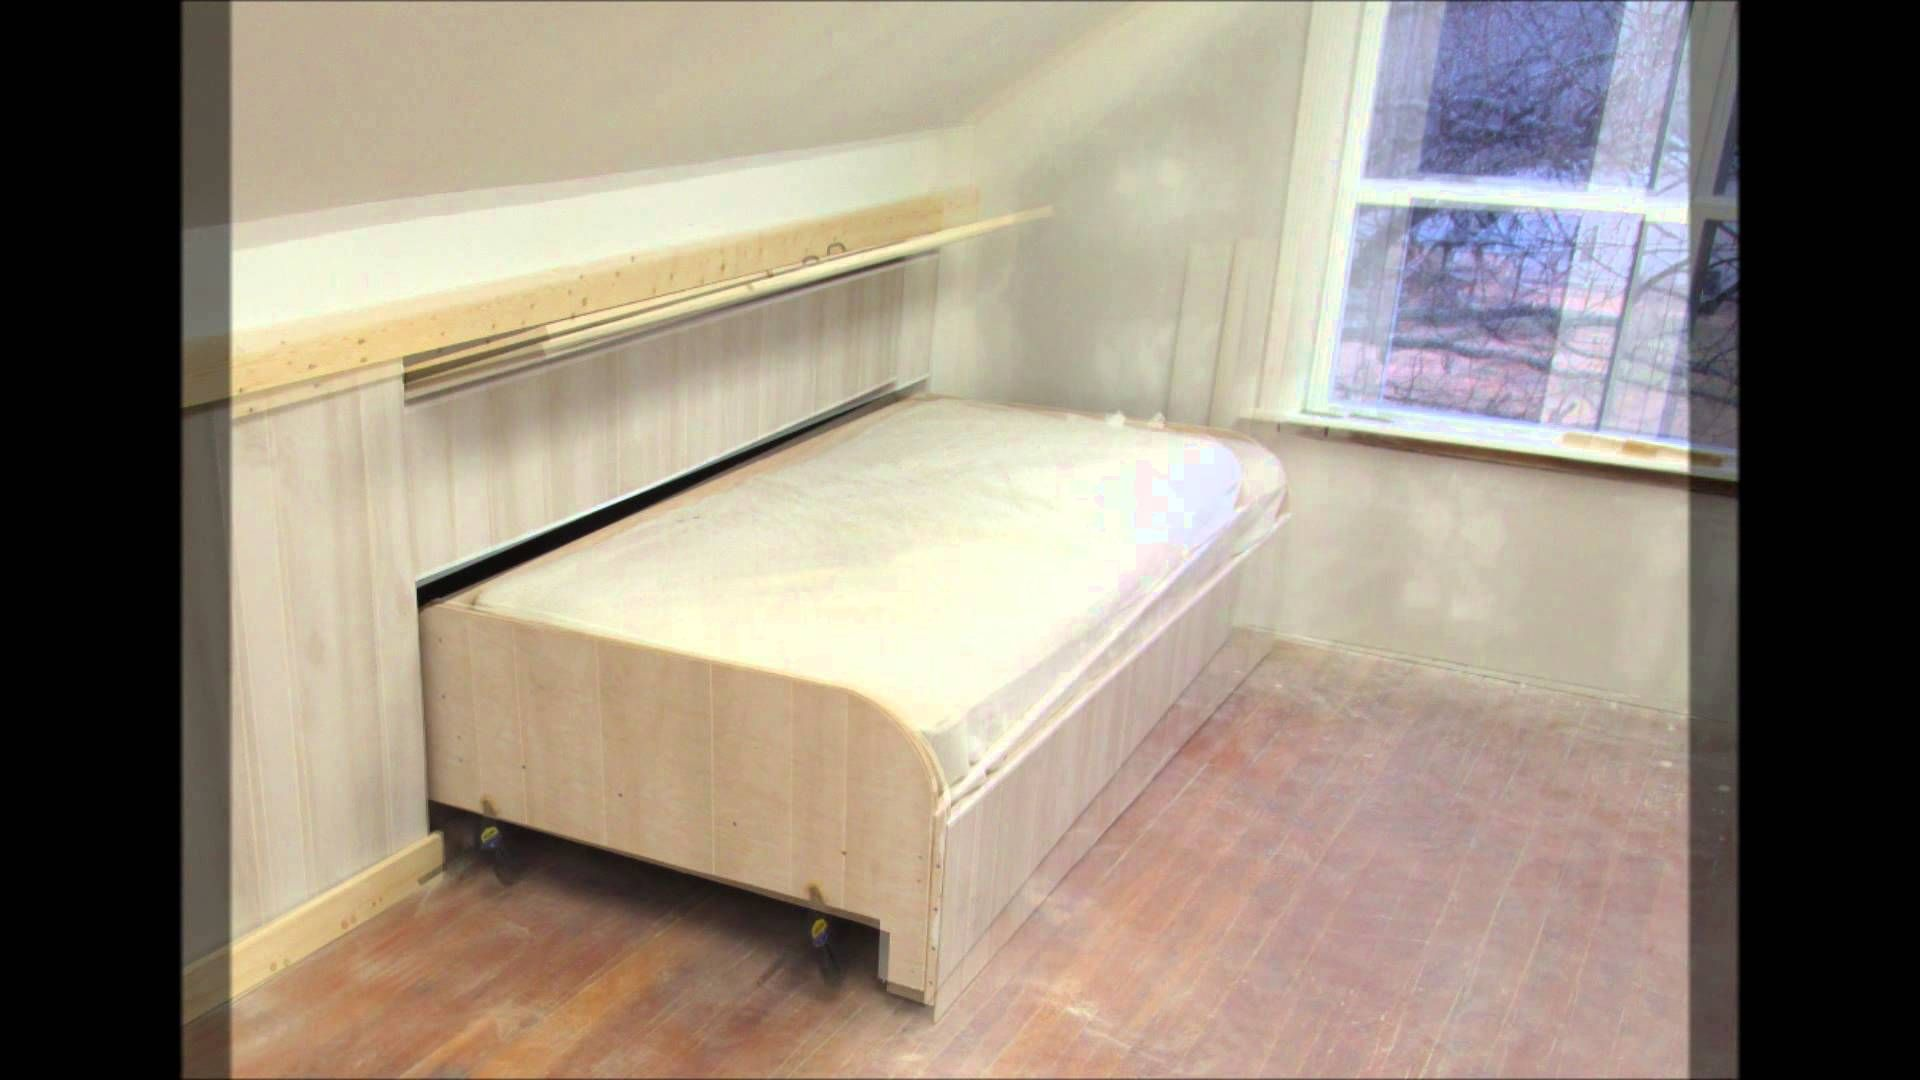 This Pull Out Bed That Tucks Into The Wall Where The Roof Pitch